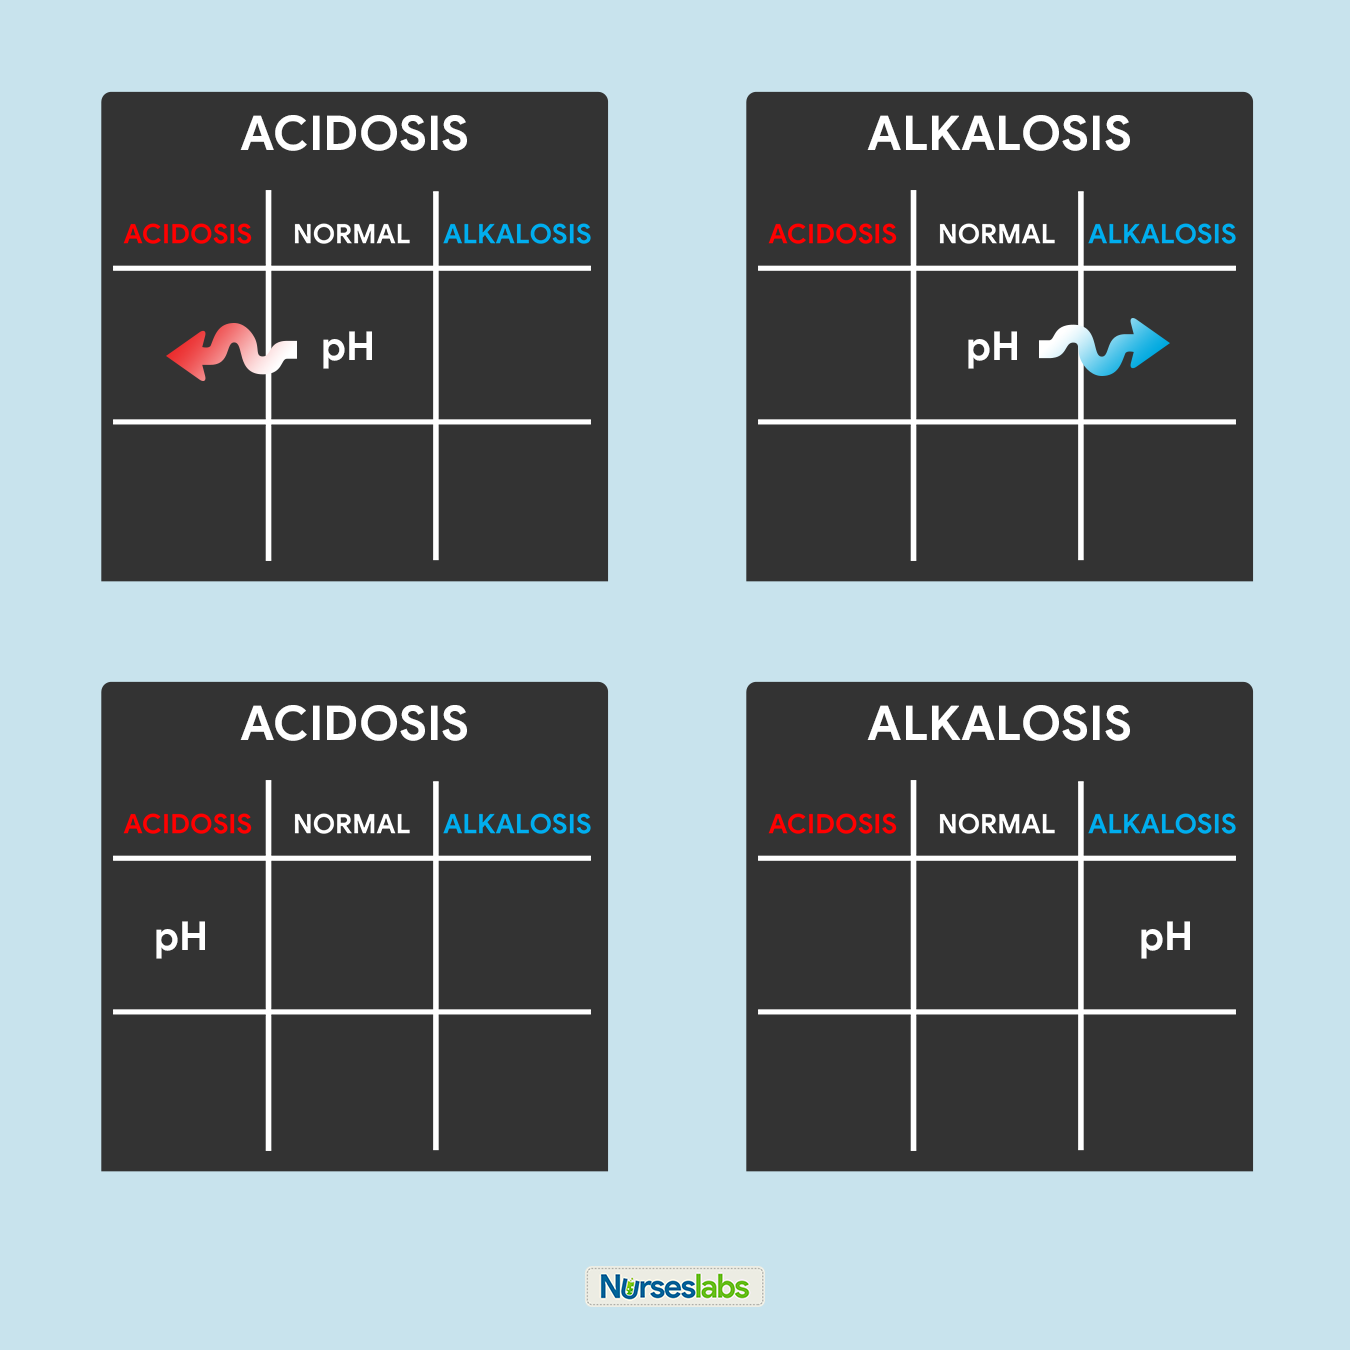 Step 6 - ABG Analysis Tic-Tac-Toe Method - Solving for goal #1. Determining if set of ABG values are ACIDOSIS or ALKALOSIS.